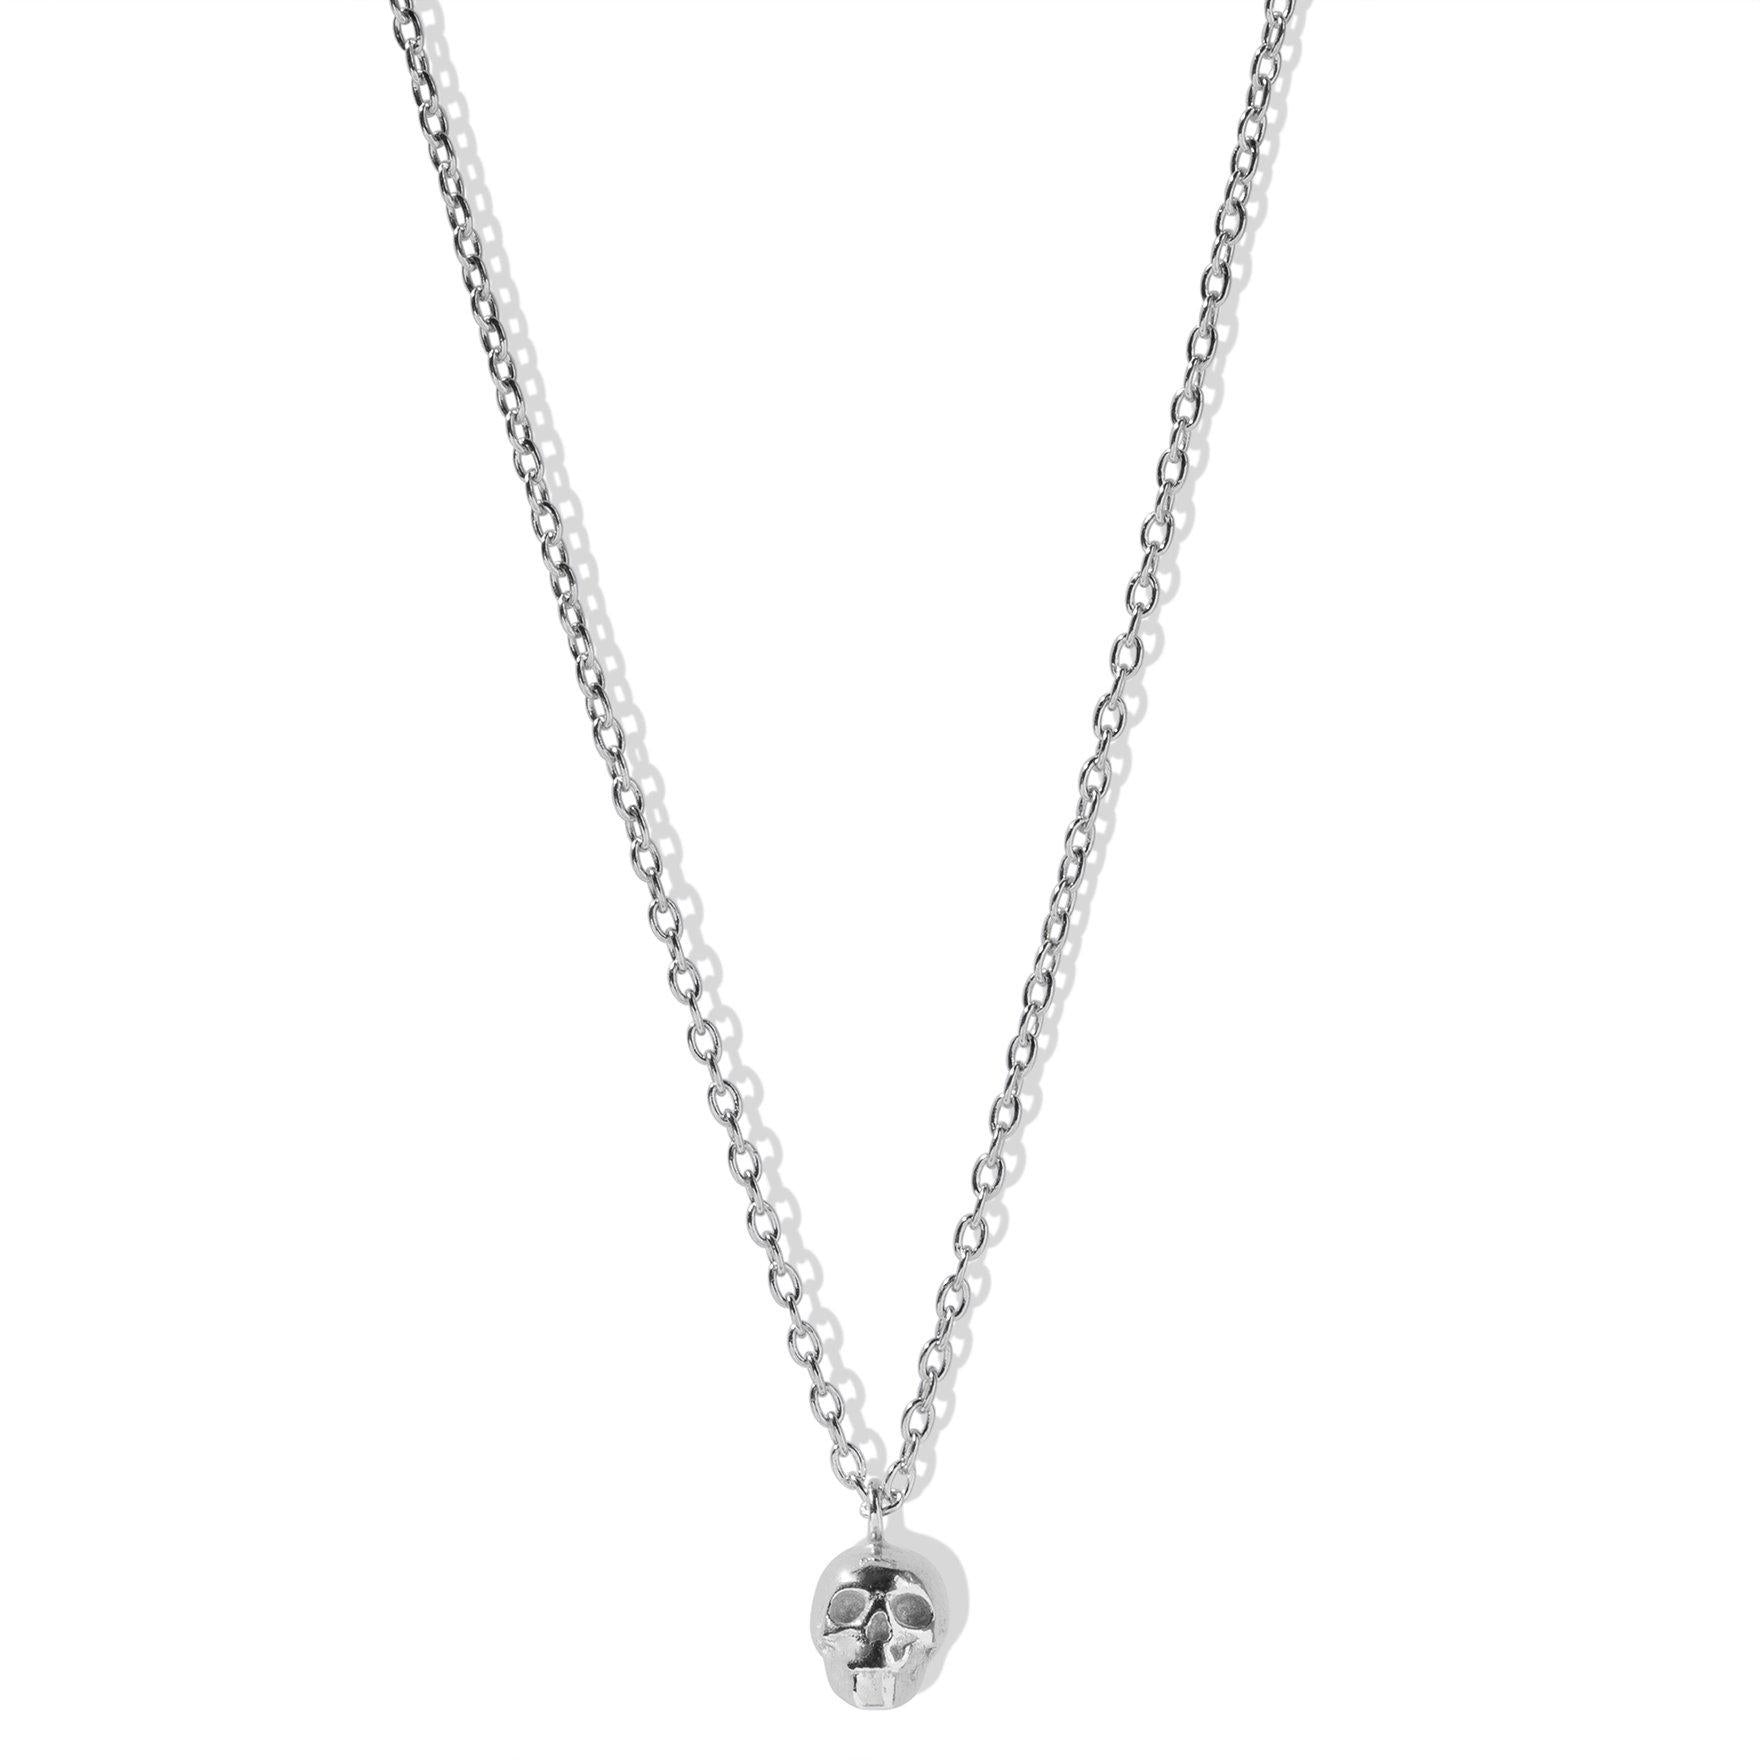 The Single Skull Necklace in Silver